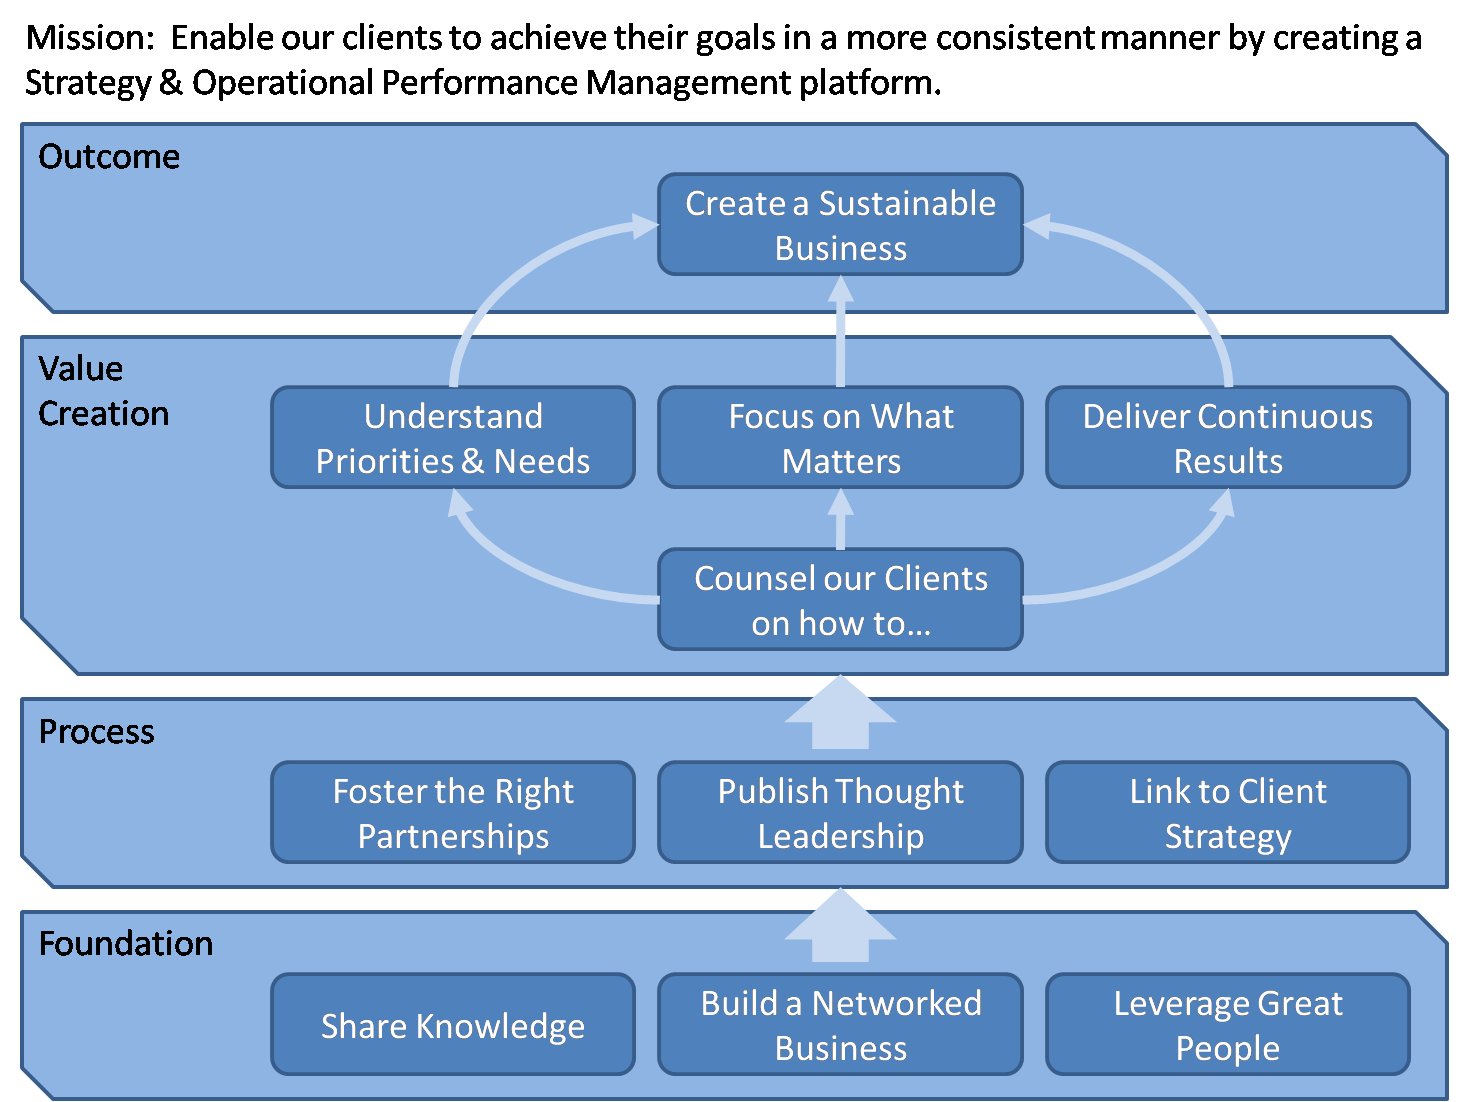 report of strategic management process practiced at jusco Customer management: to execute and maintain a crm process that is producing results marketing management: develop and implement a promotional plan to drive increased business alliance management: establish one new strategic alliance annually.